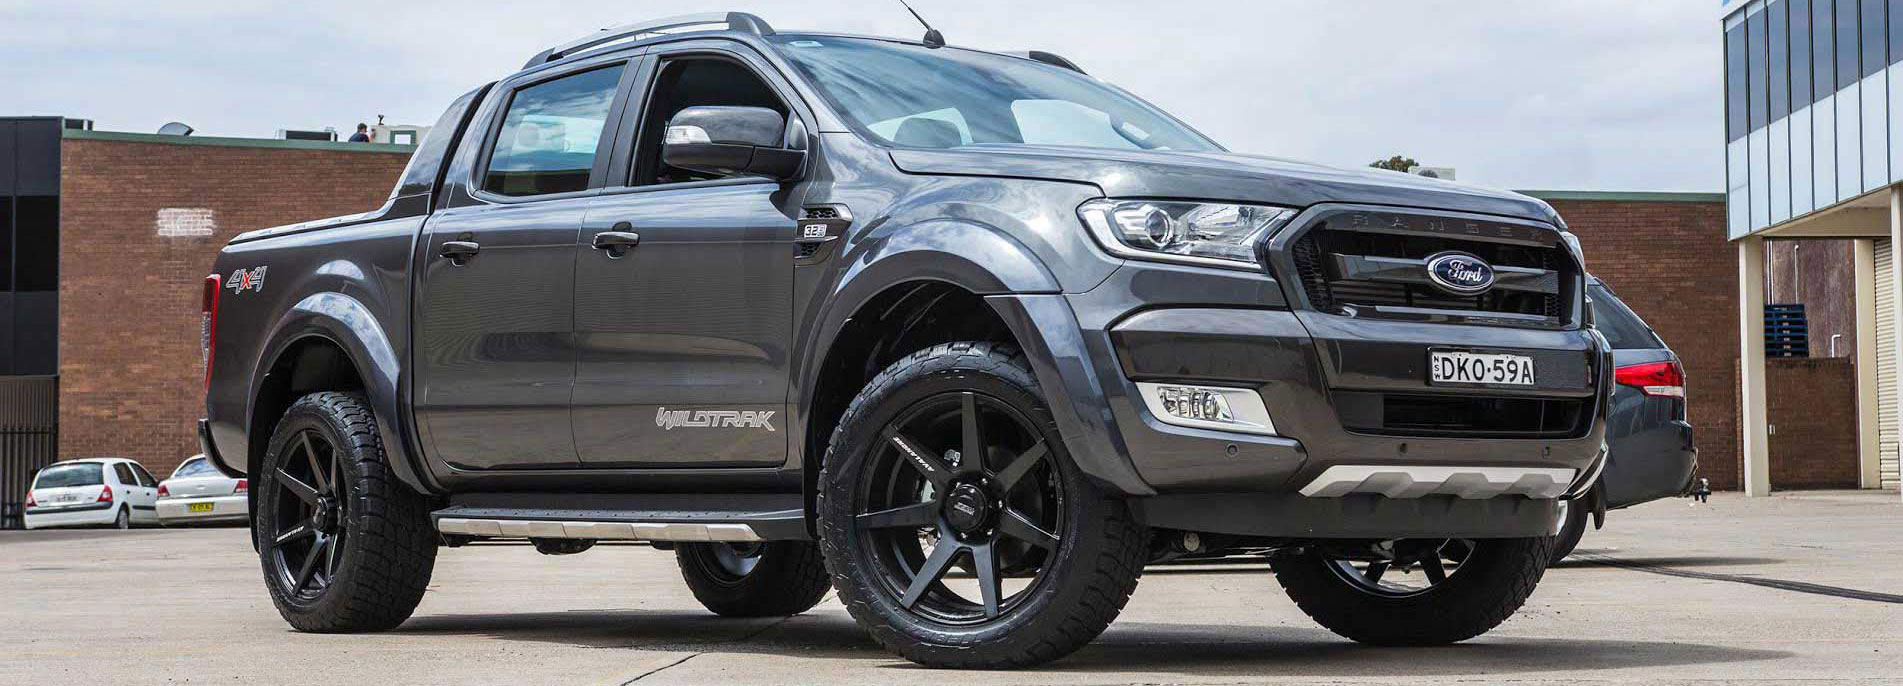 SSW Avalanche on Ford Ranger